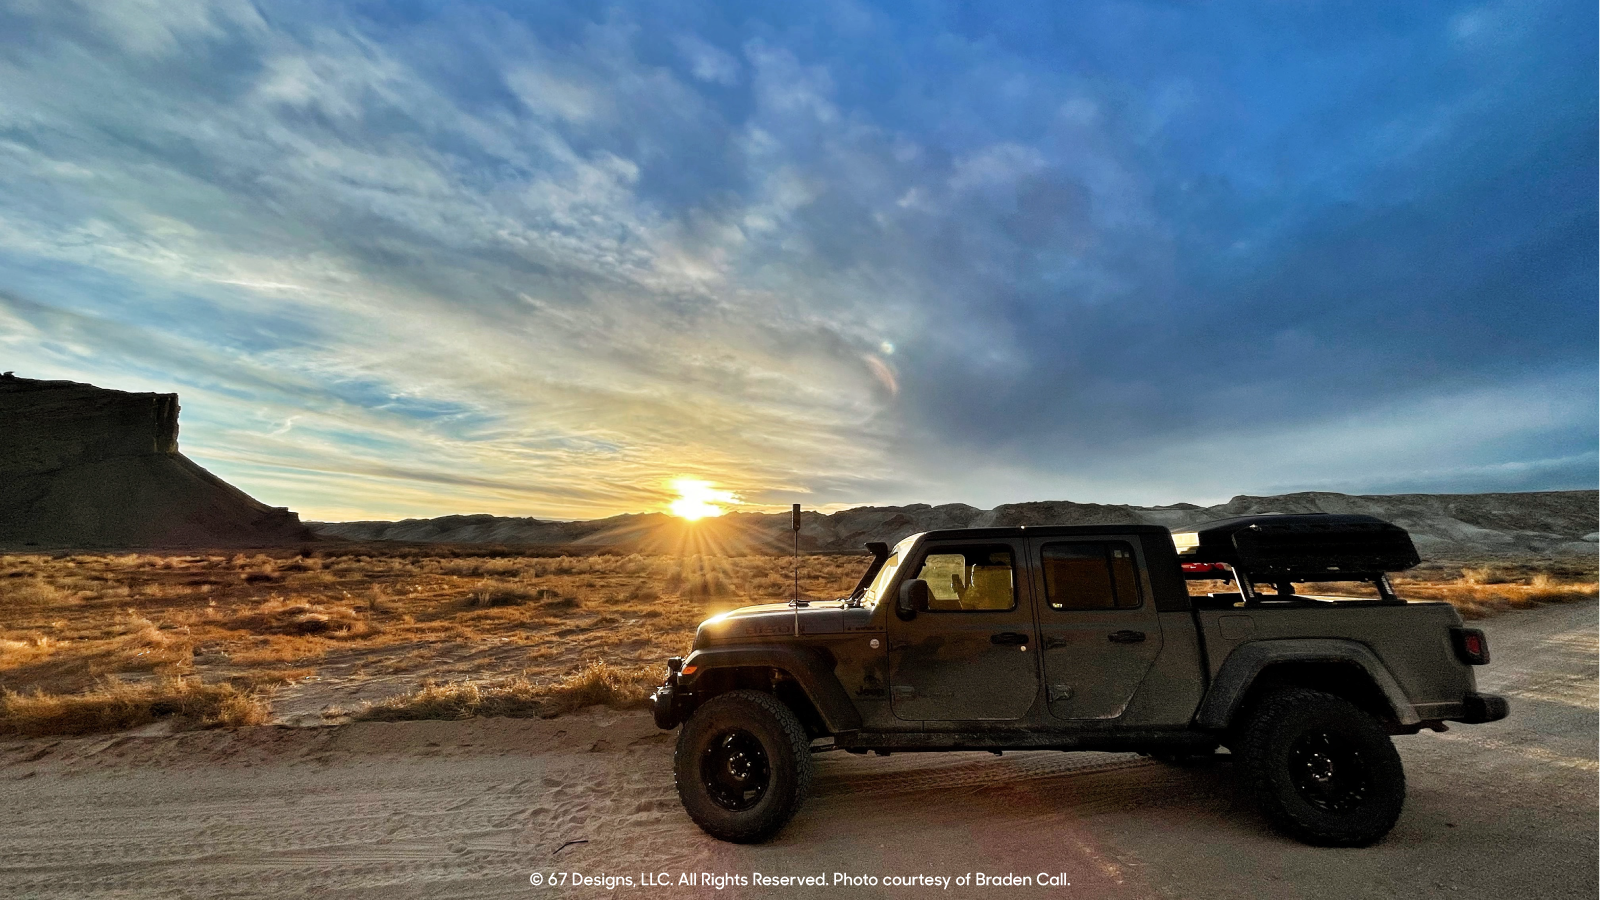 Sunset and blue skies behind the Jeep